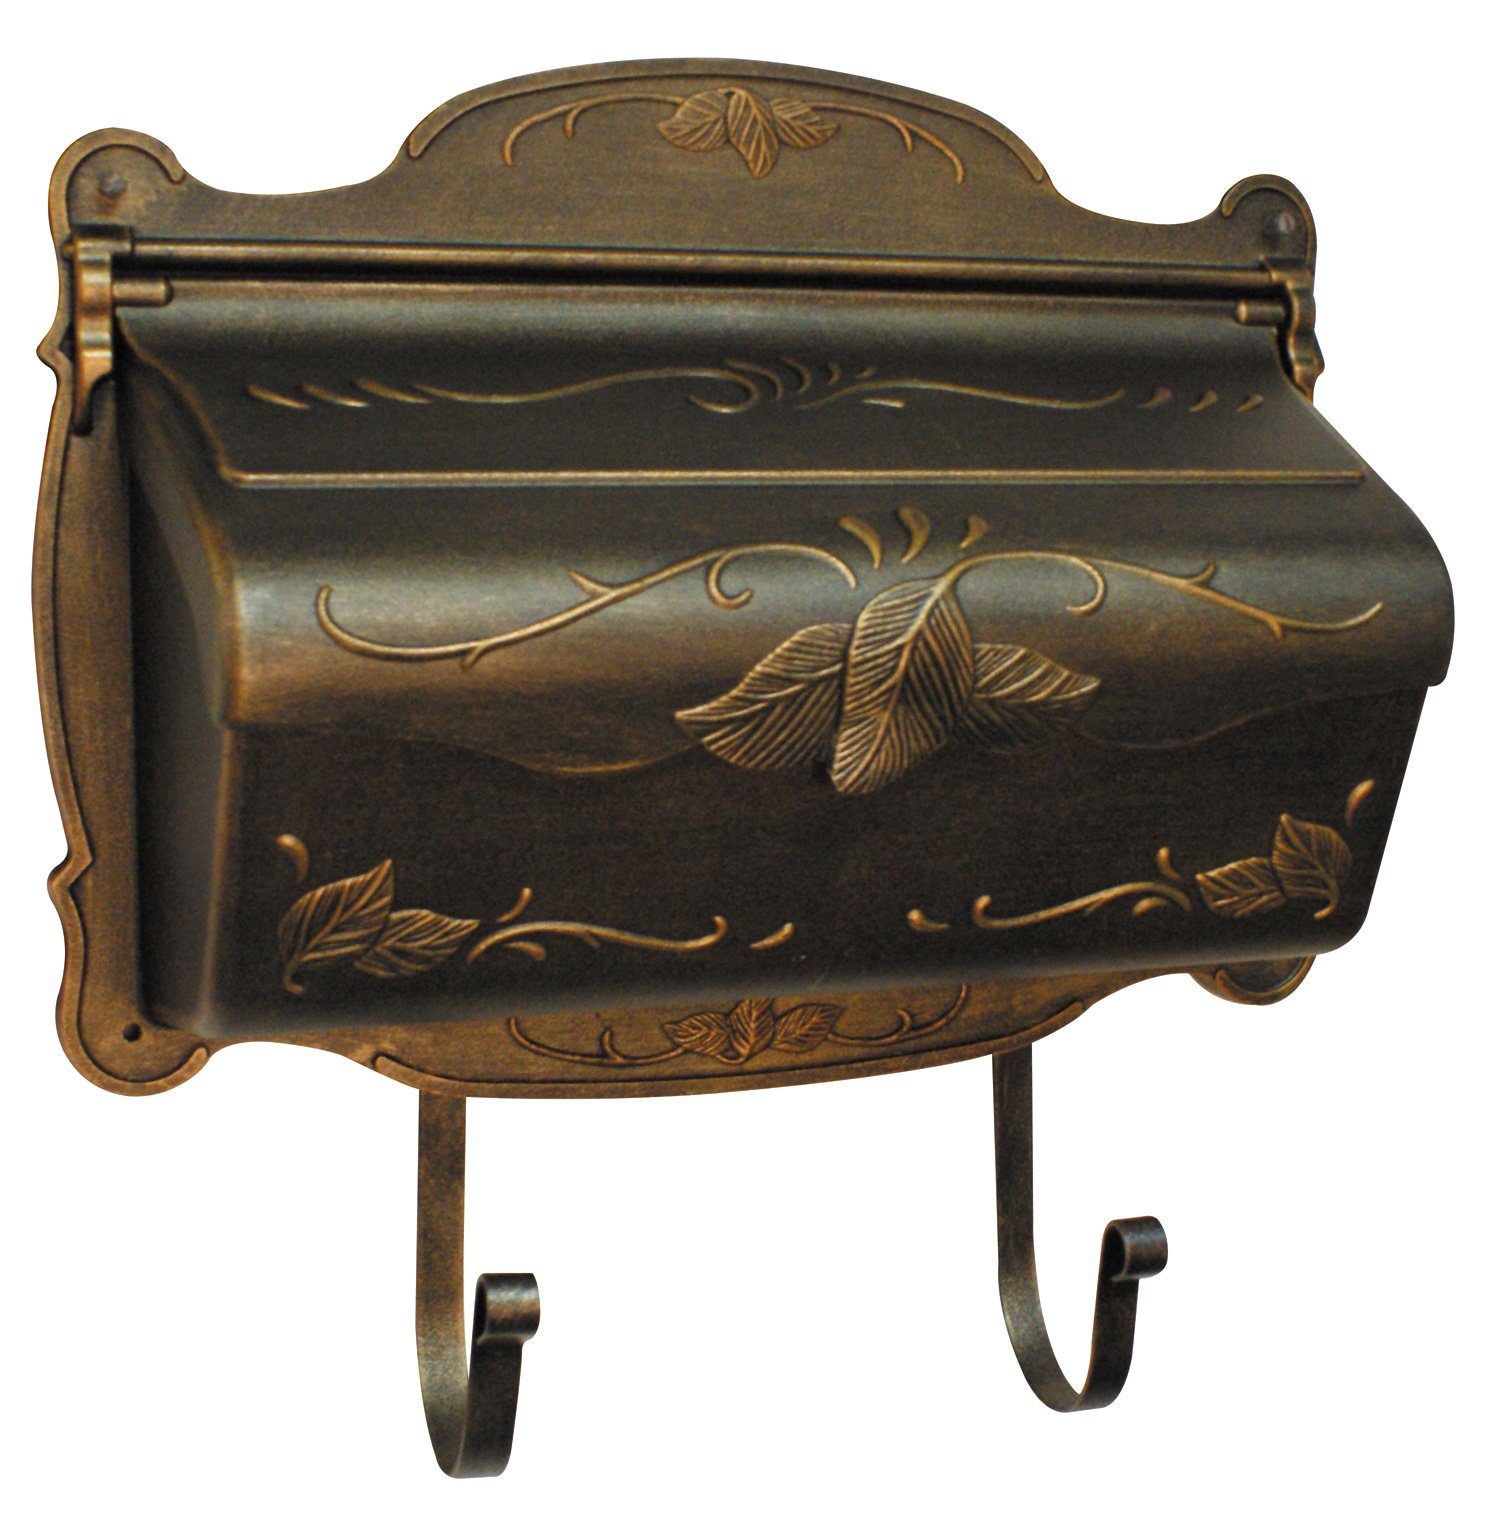 Special Lite Products SHF-1001-BR Floral Horizontal Mailbox, Bronze by Special Lite Products Company, Inc.